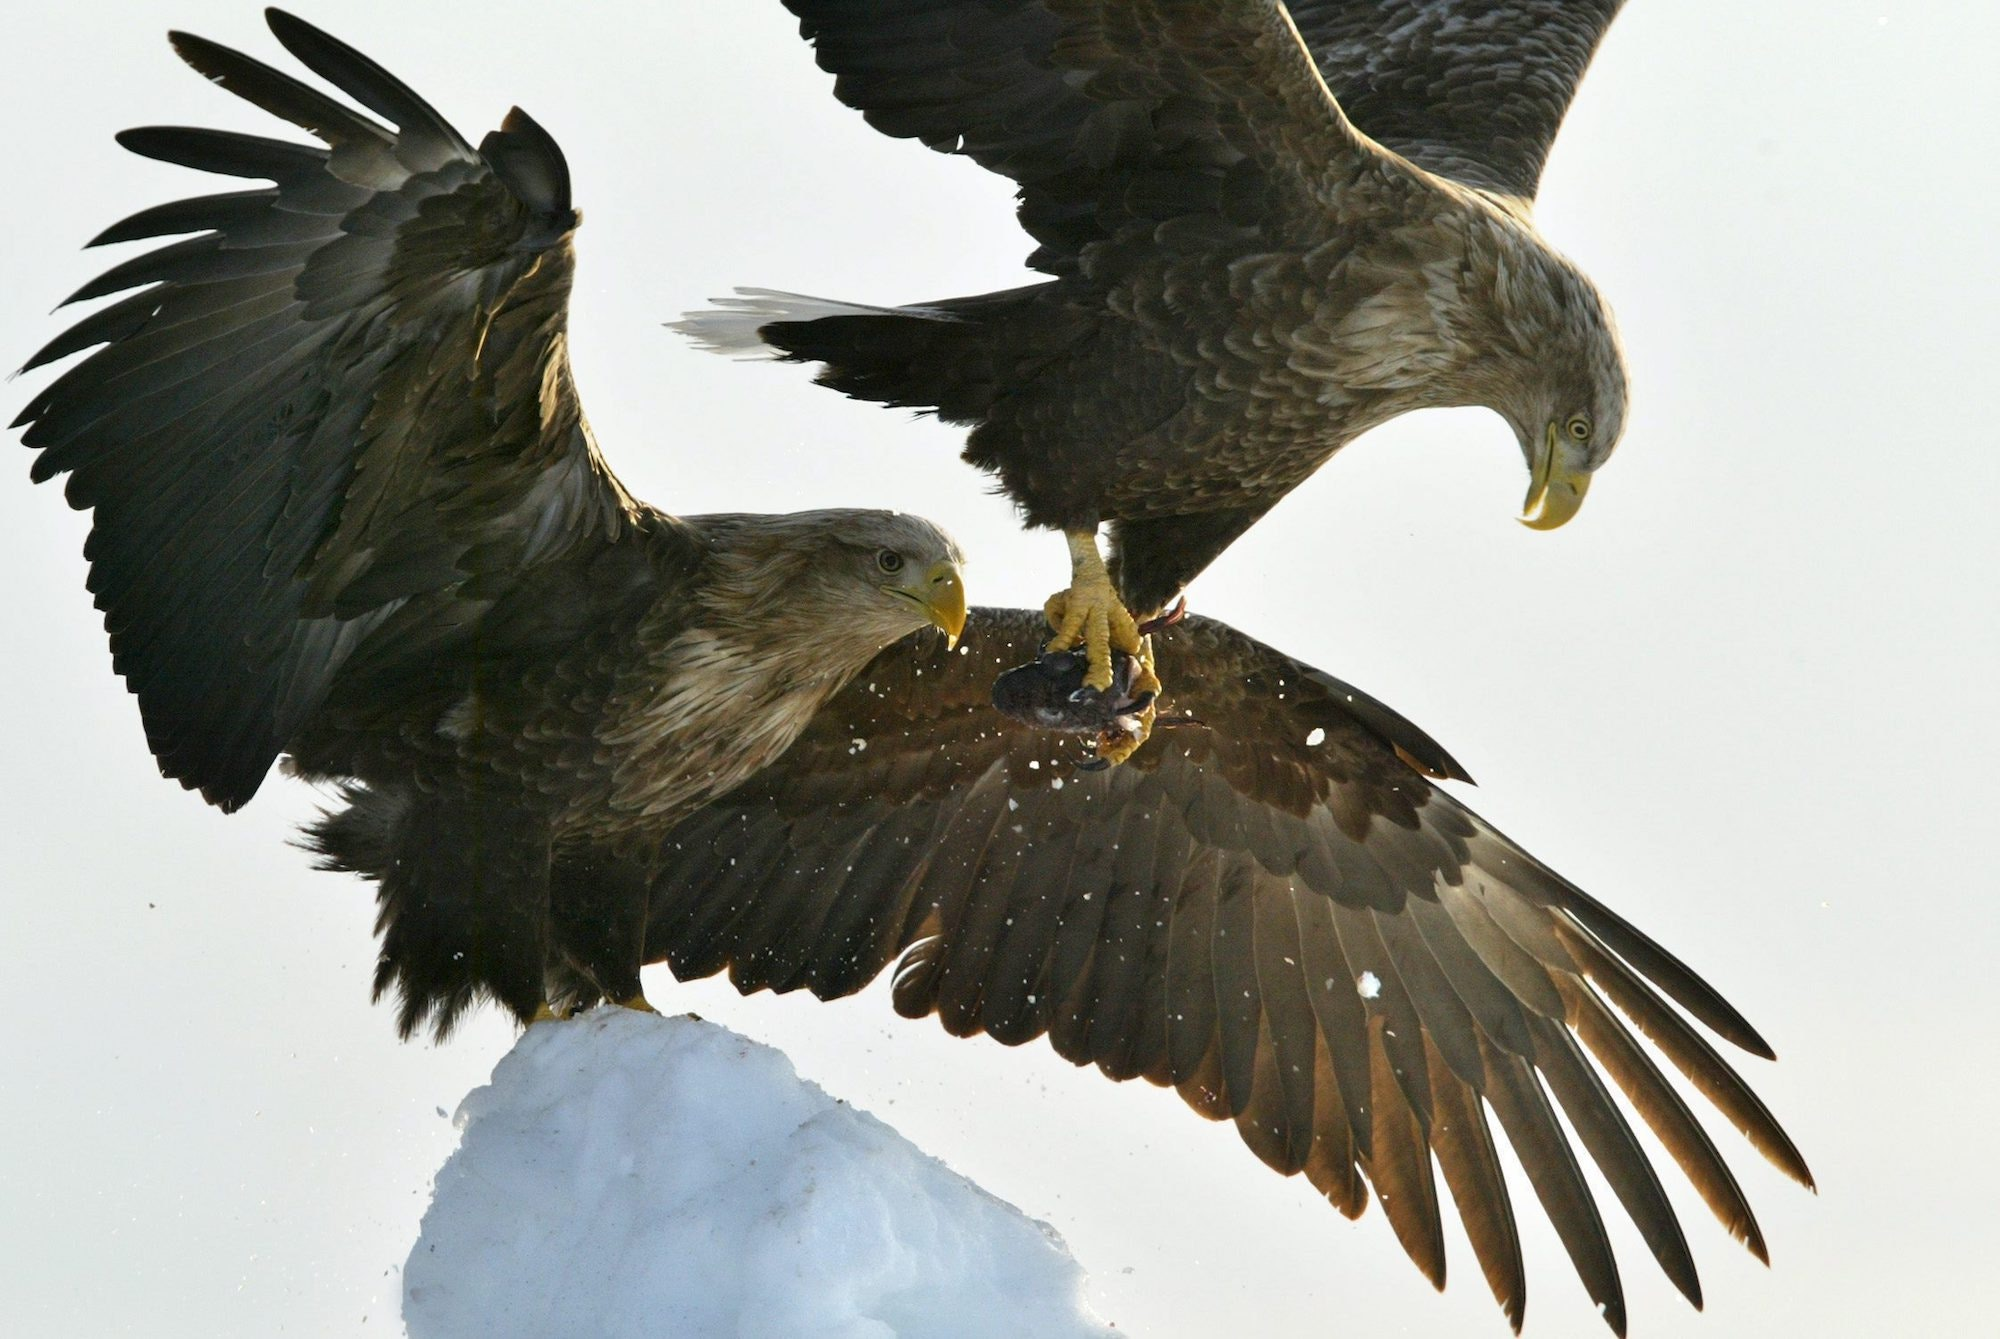 White-tailed sea eagles are the fourth largest eagles in the world. A number of these birds find shelter on Japan's UNESCO-listed Shiretoko peninsula.